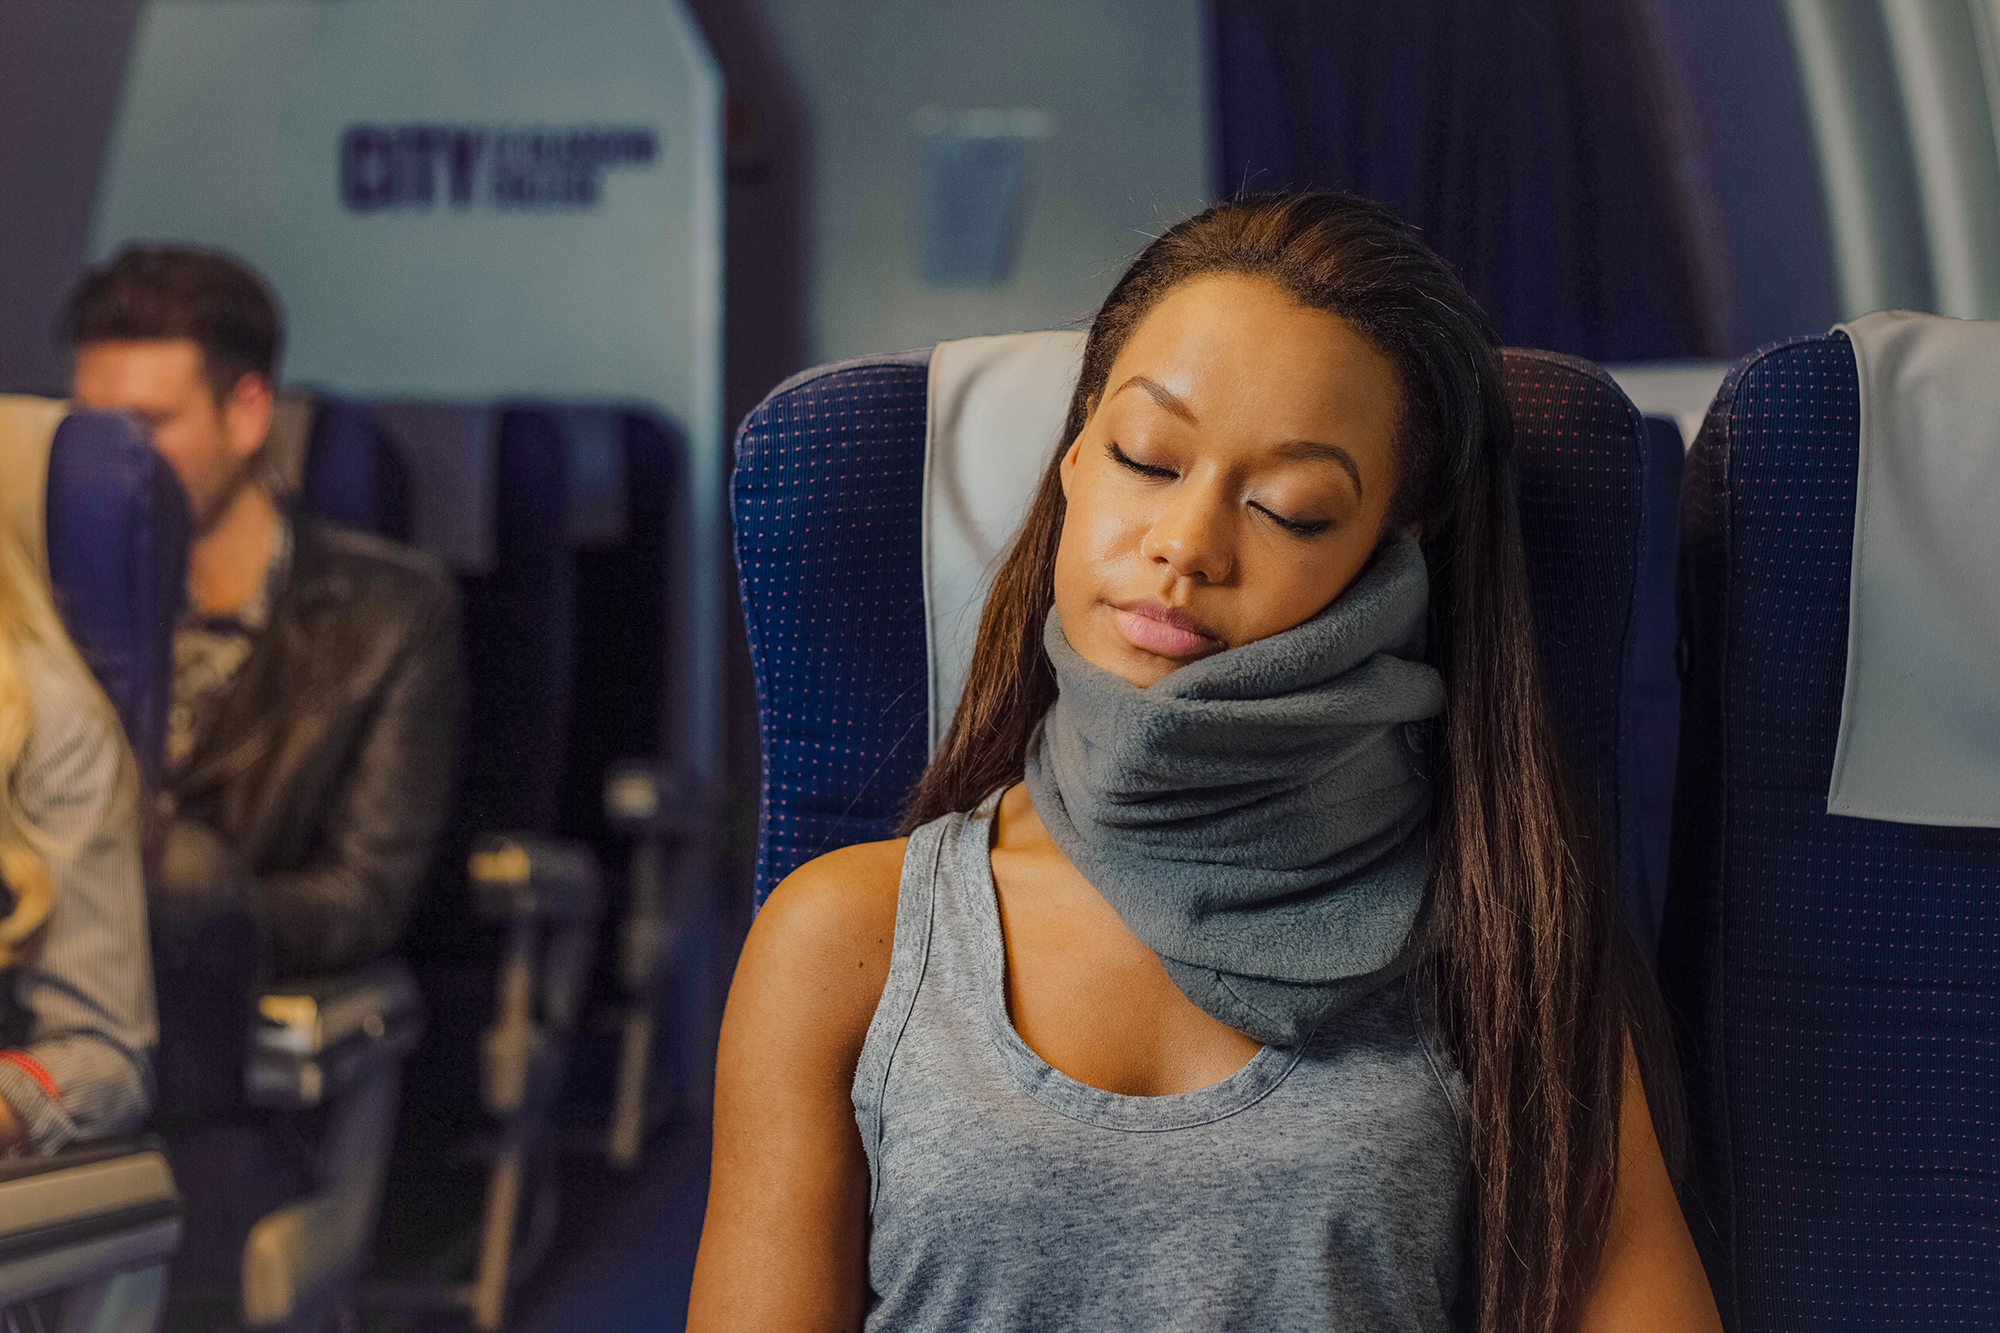 Amazon Prime Day 2019 Trtl Travel Pillow Deals